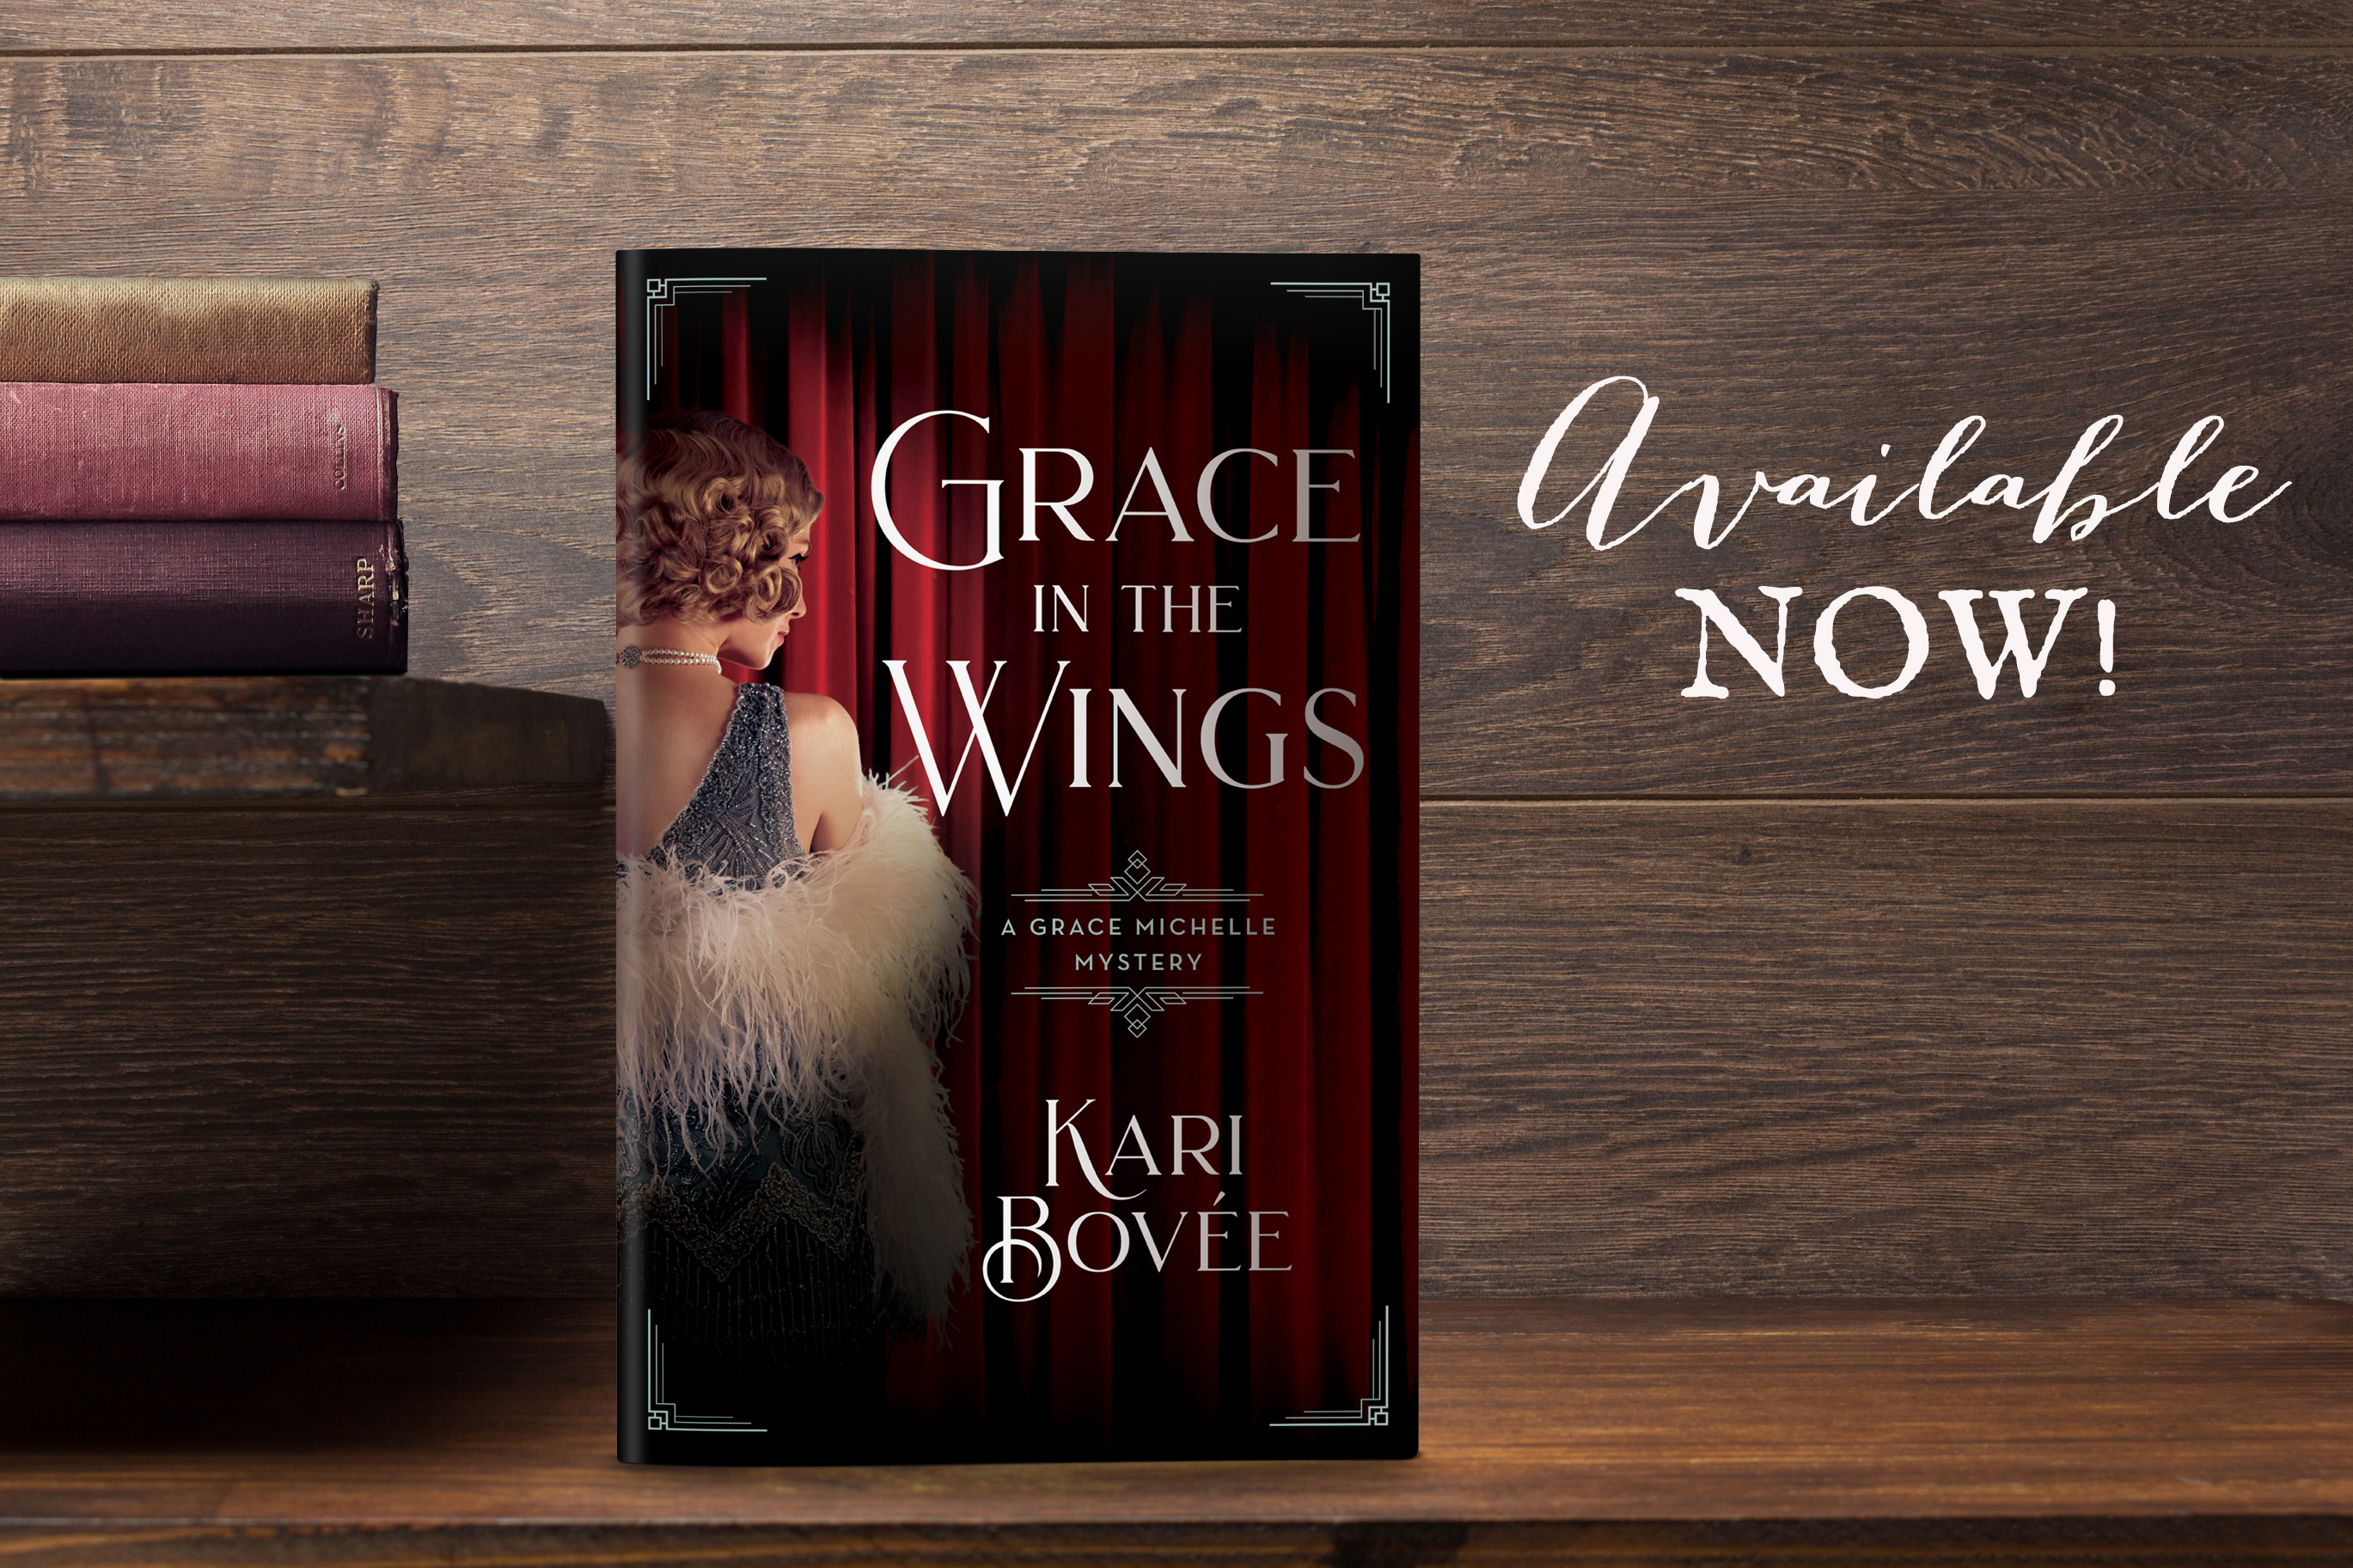 historical fiction books prohibition 18th amendment 1920 harlem renaissance historical mystery series grace michelle grace in the wings Kari Bovee historical fiction broadway theater mystery history female lead Cozy Mystery romantic suspense thriller sleuth